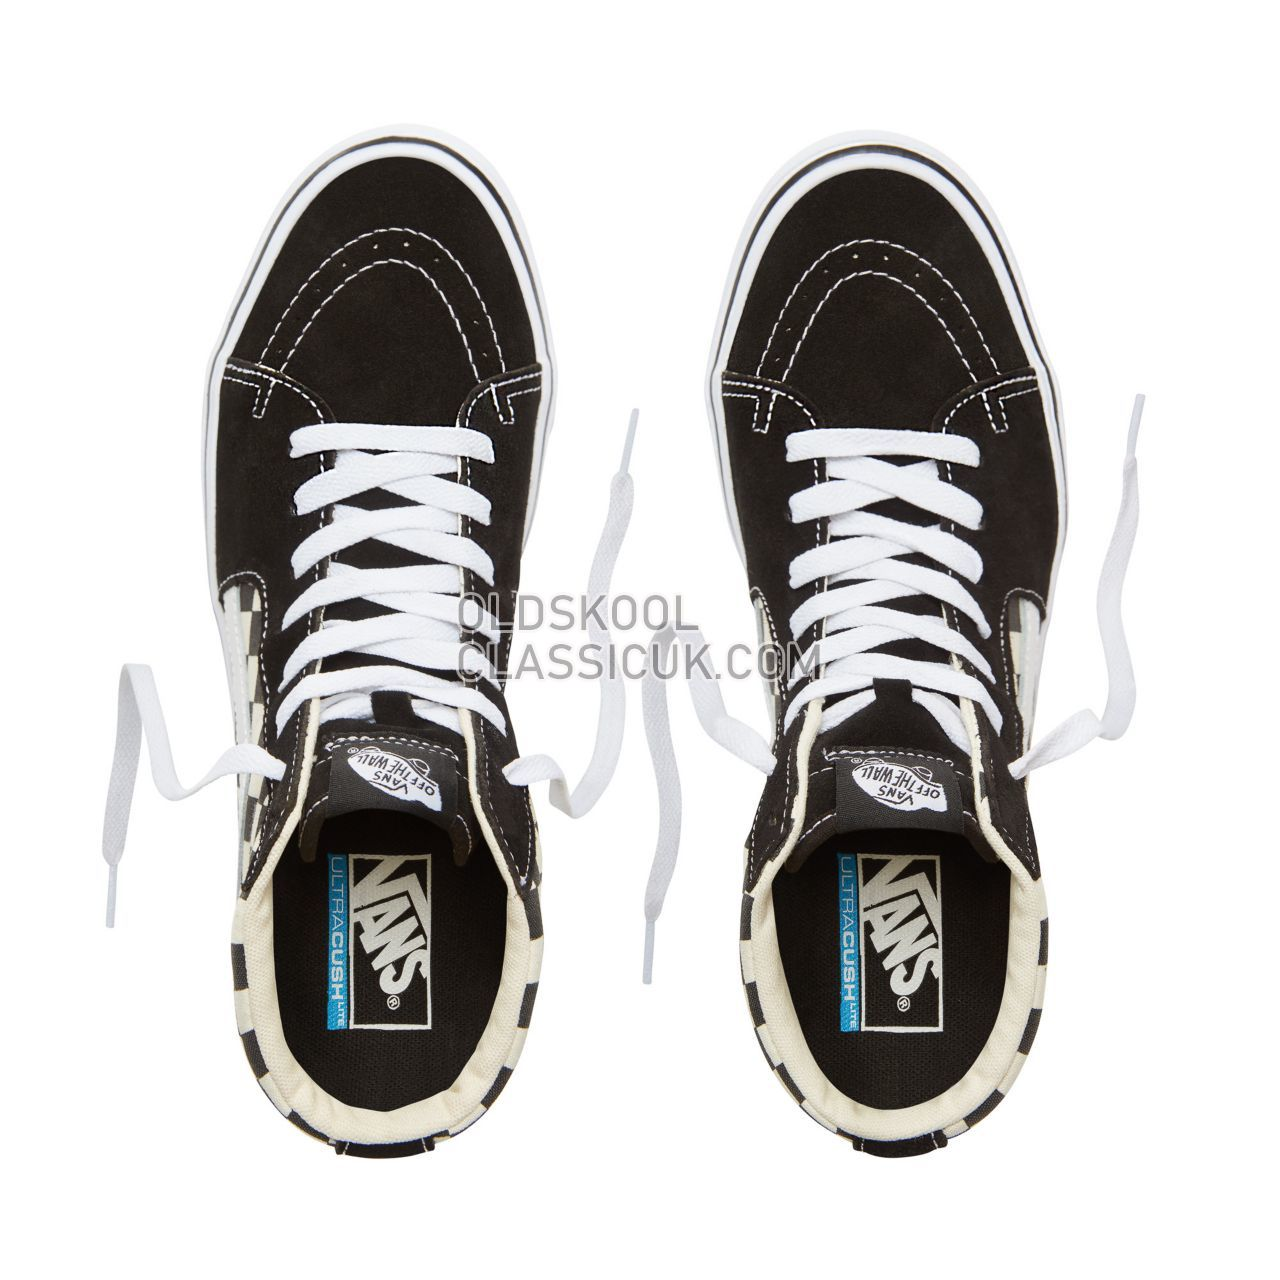 Vans Checkerboard Sk8-Hi Lite Sneakers Mens Black-White VA2Z5Y5GX Shoes